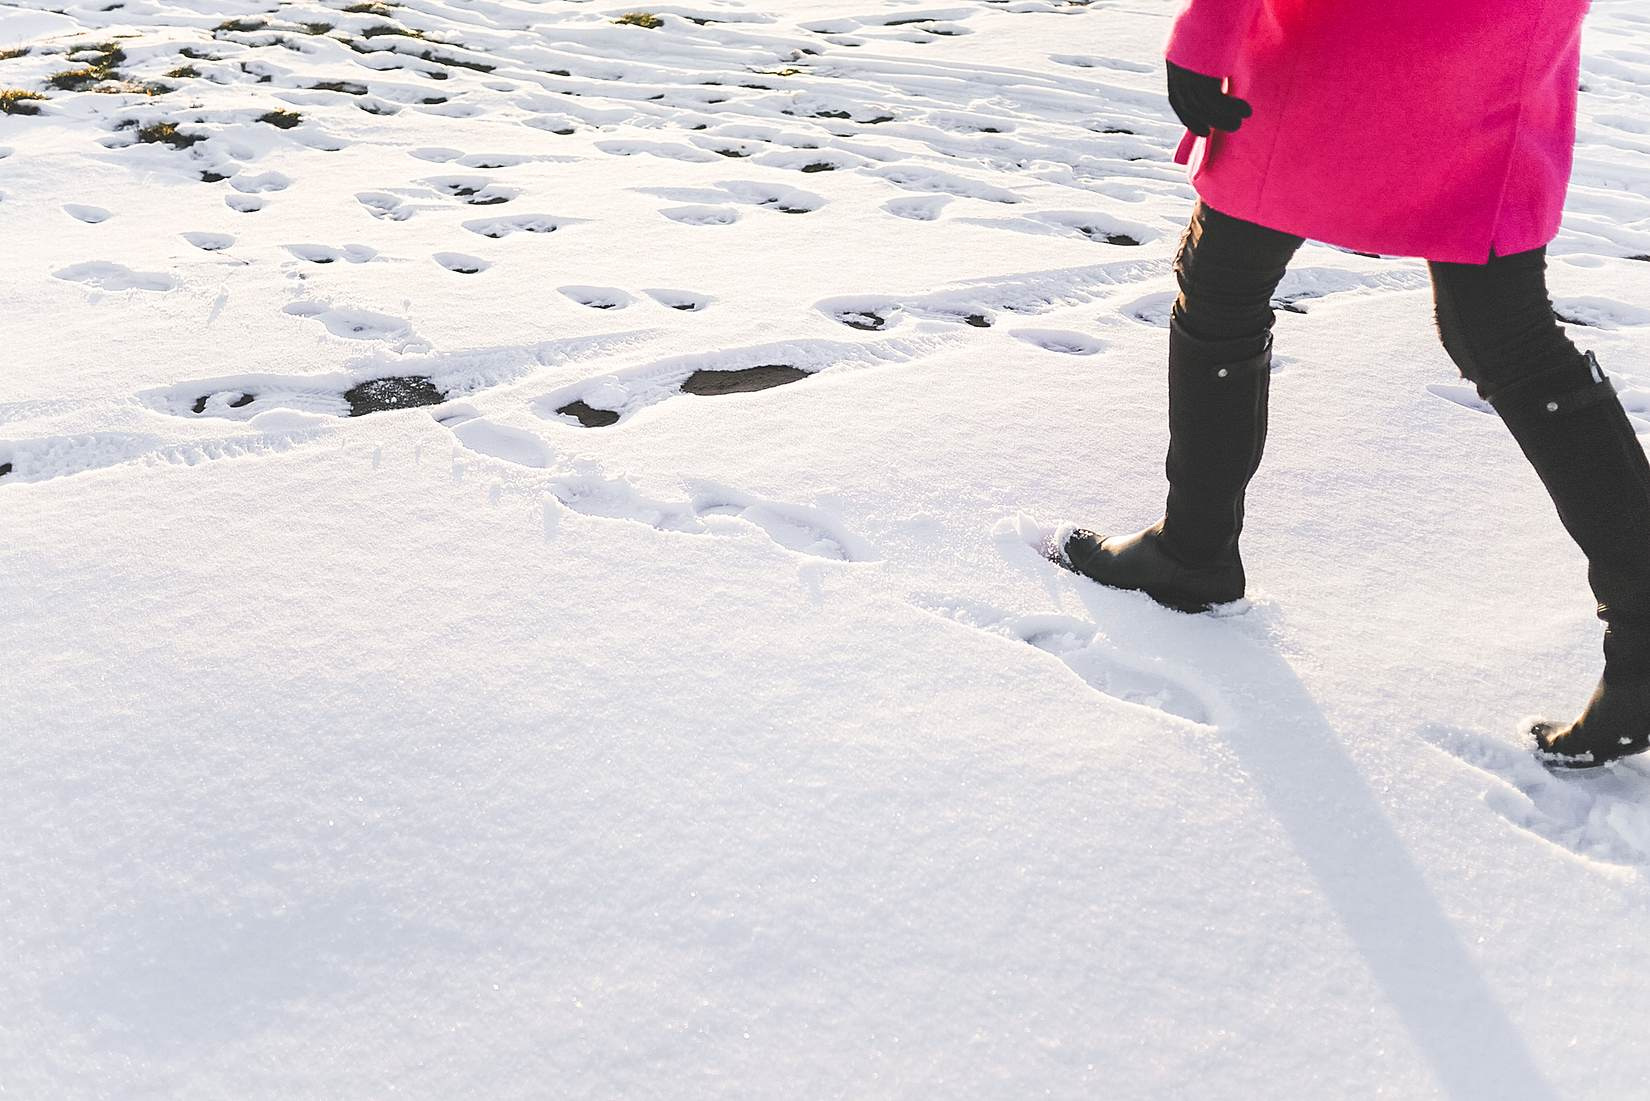 walking in the snow - photo #11